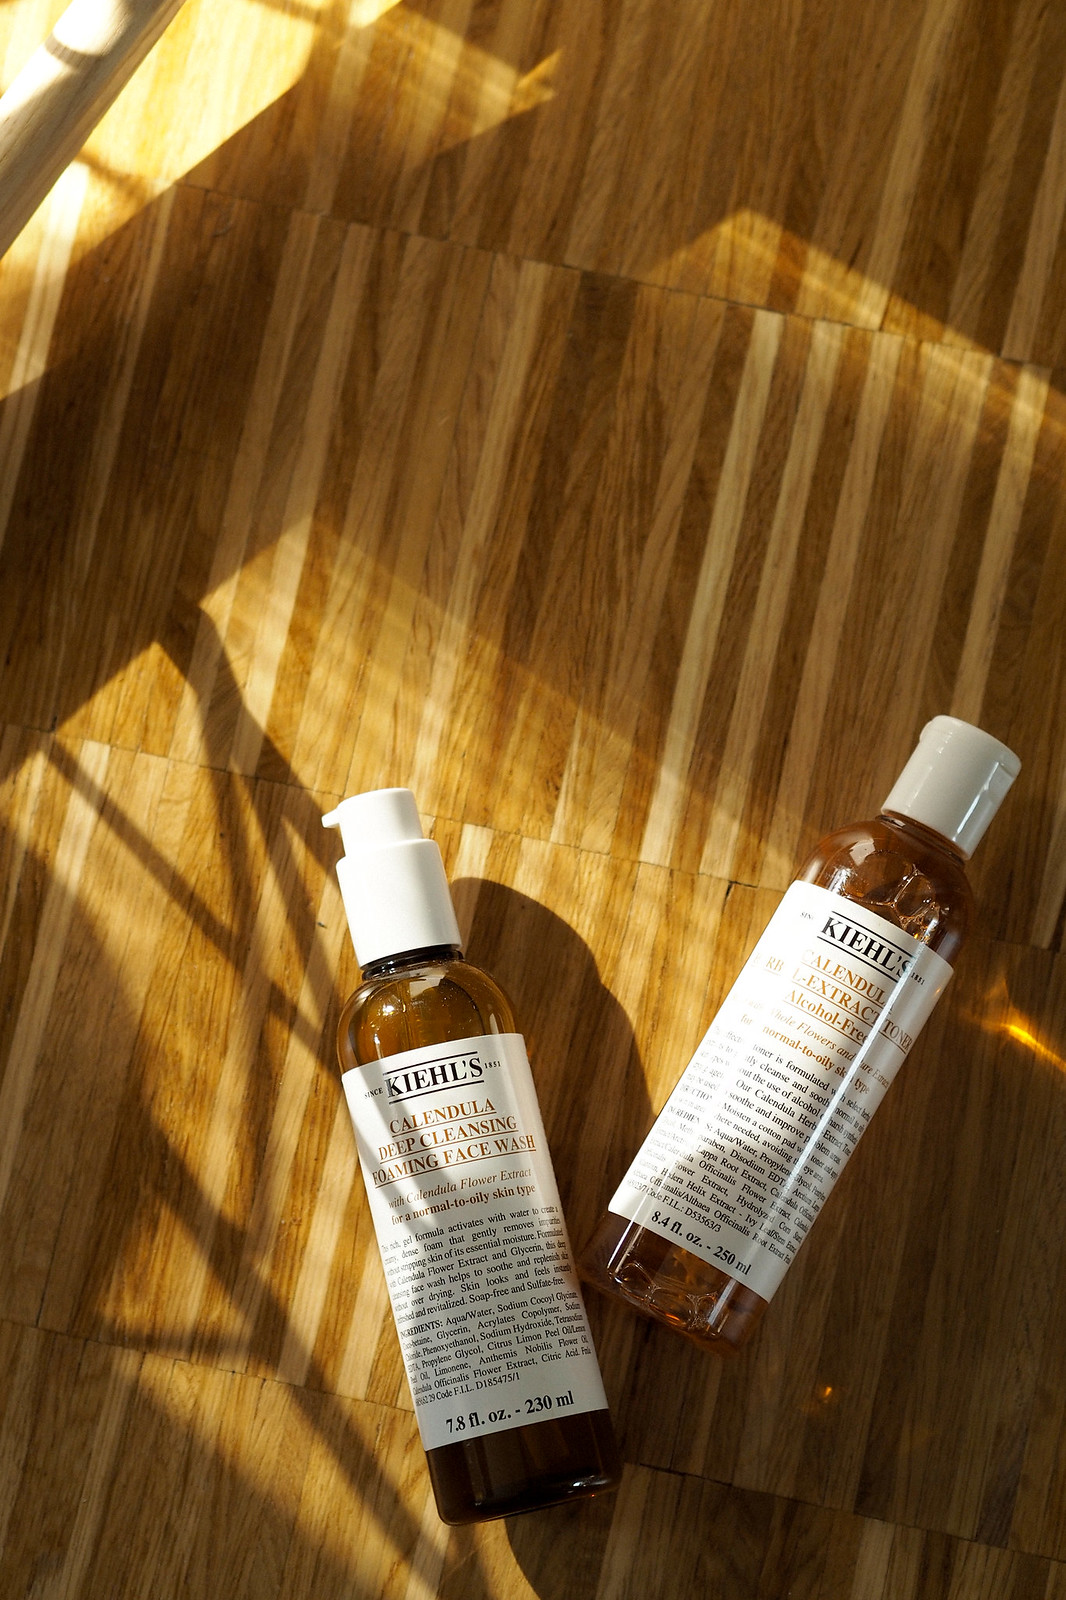 kiehl's morning routine beauty beautyblogger golden light amber beautiful wood calendula cleansing moisturizing mask skincare apothecary video blogger vlogger cats & dogs beautblog ricarda schernus düsseldorf max bechmann fotografie film nrw blog 2